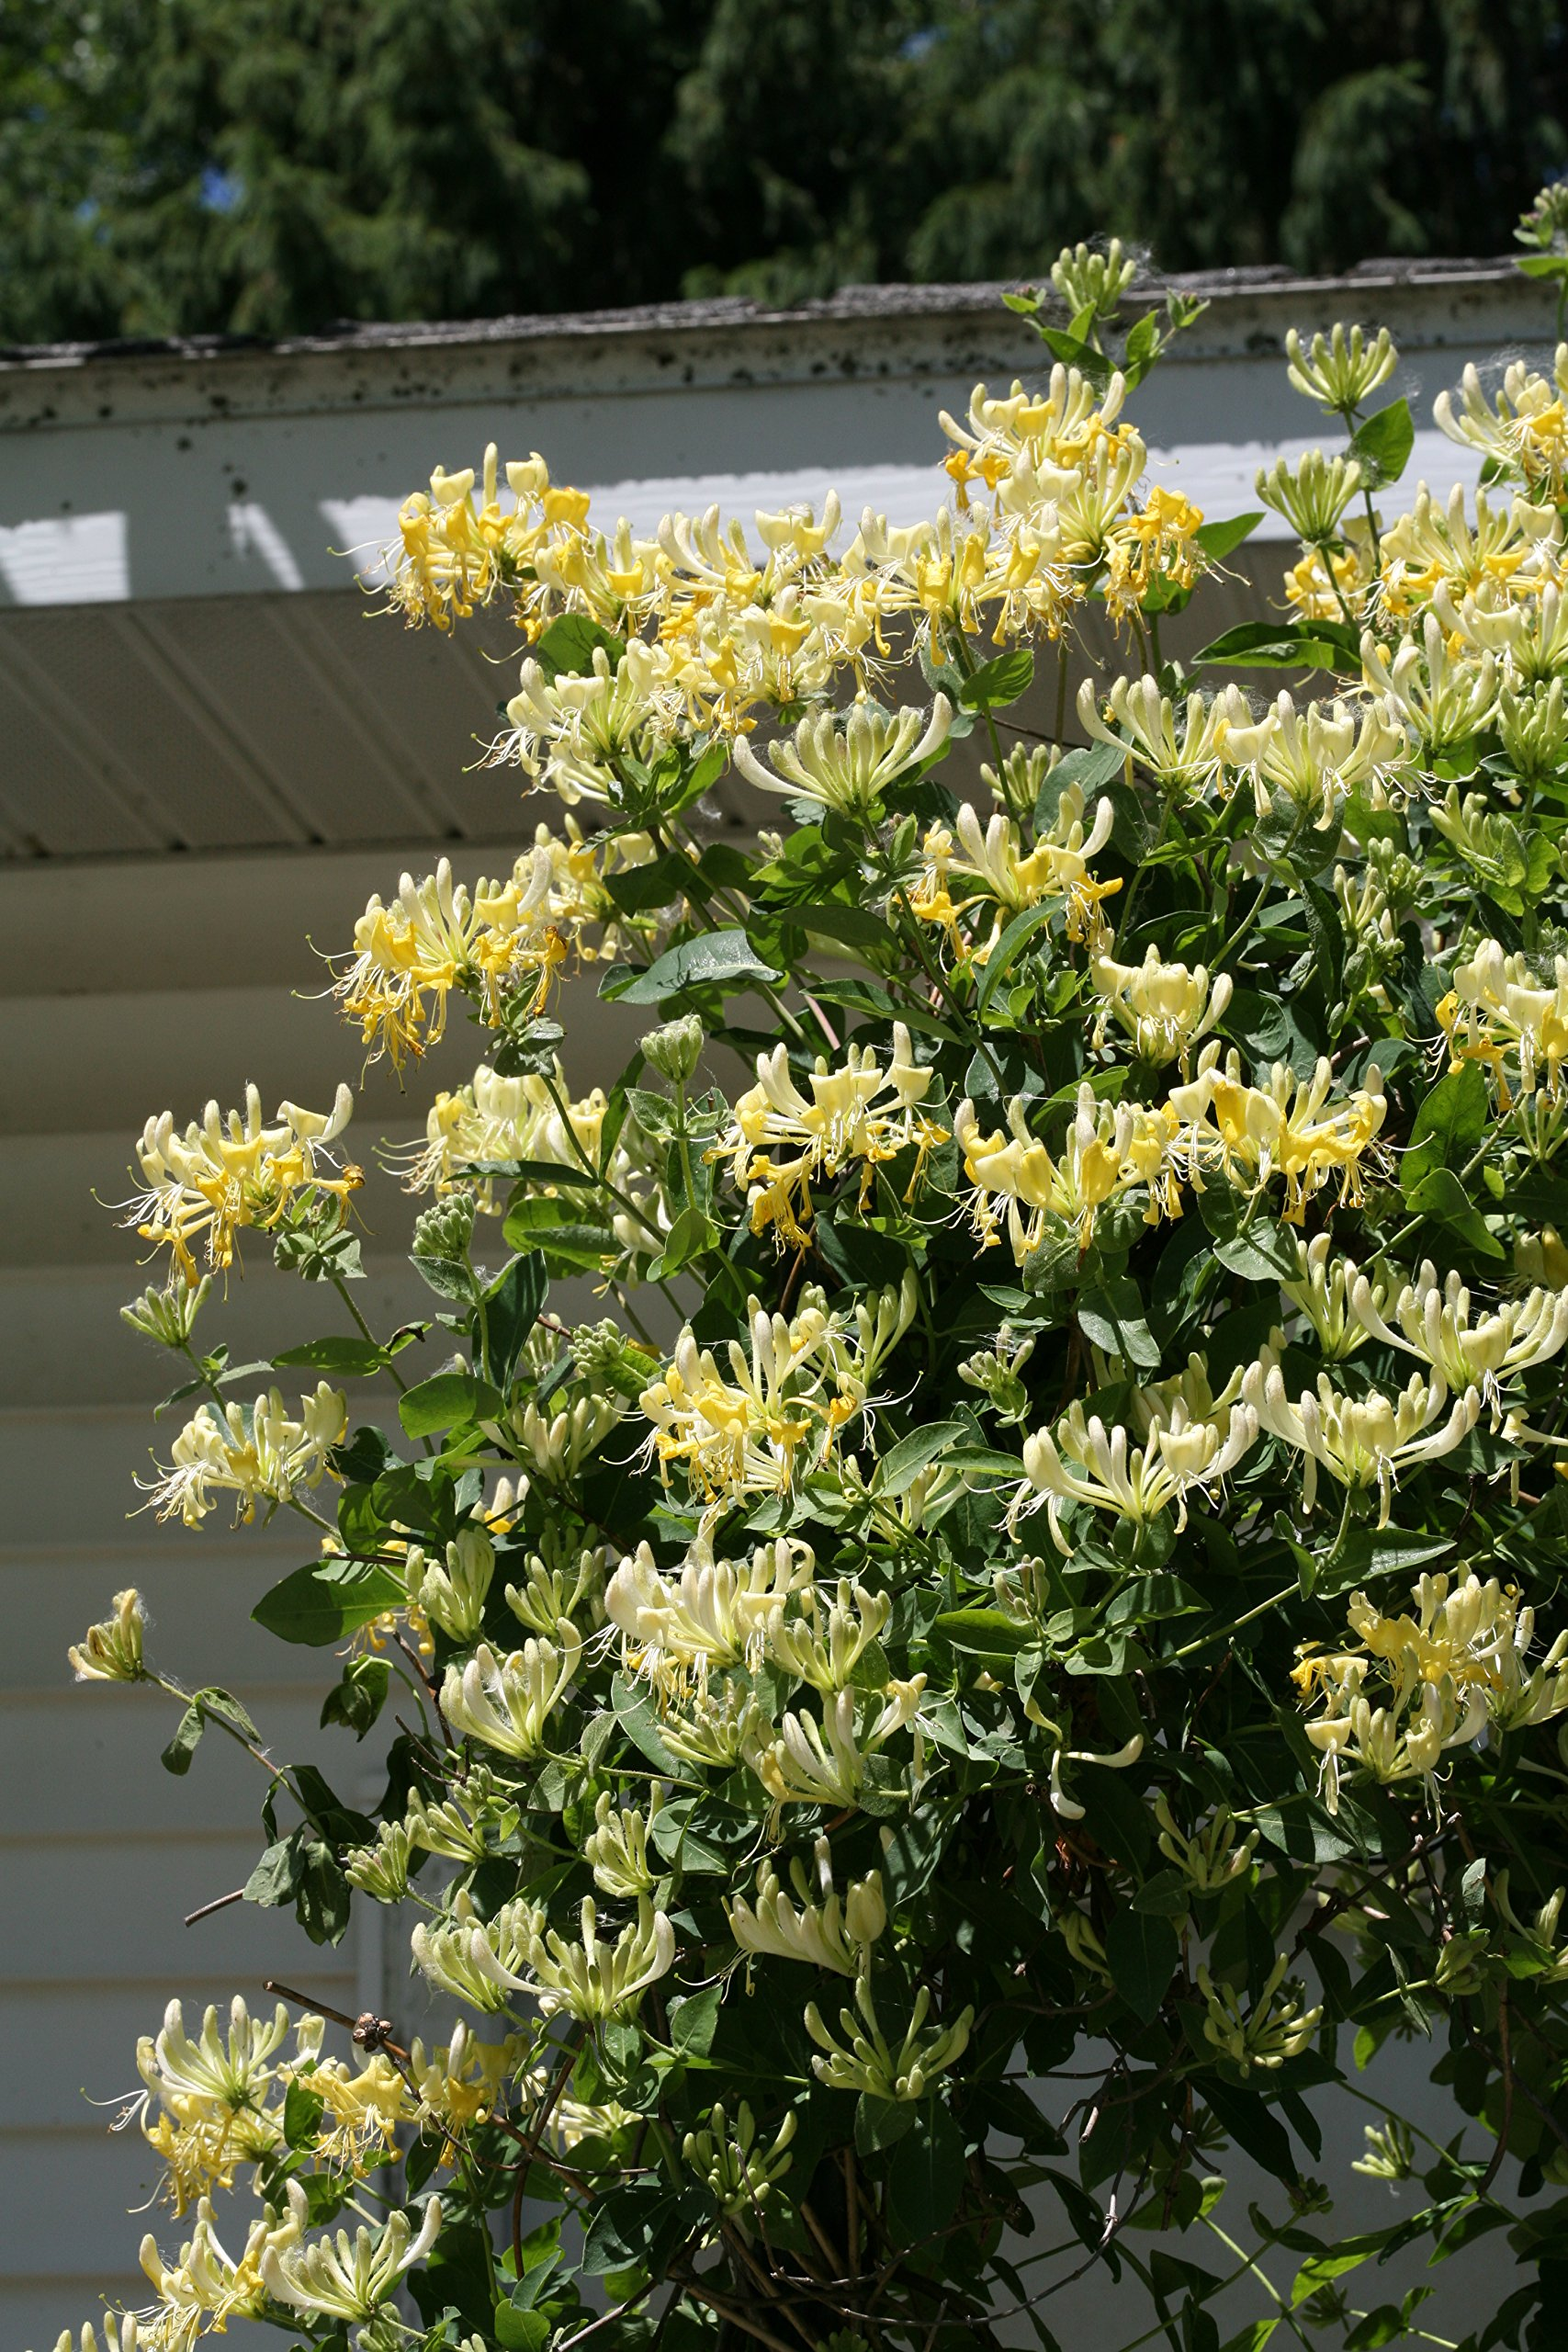 Scentsation Honeysuckle (Lonicera) Live Shrub, Yellow Flowers and Red Berries, 1 Gallon by Proven Winners (Image #7)